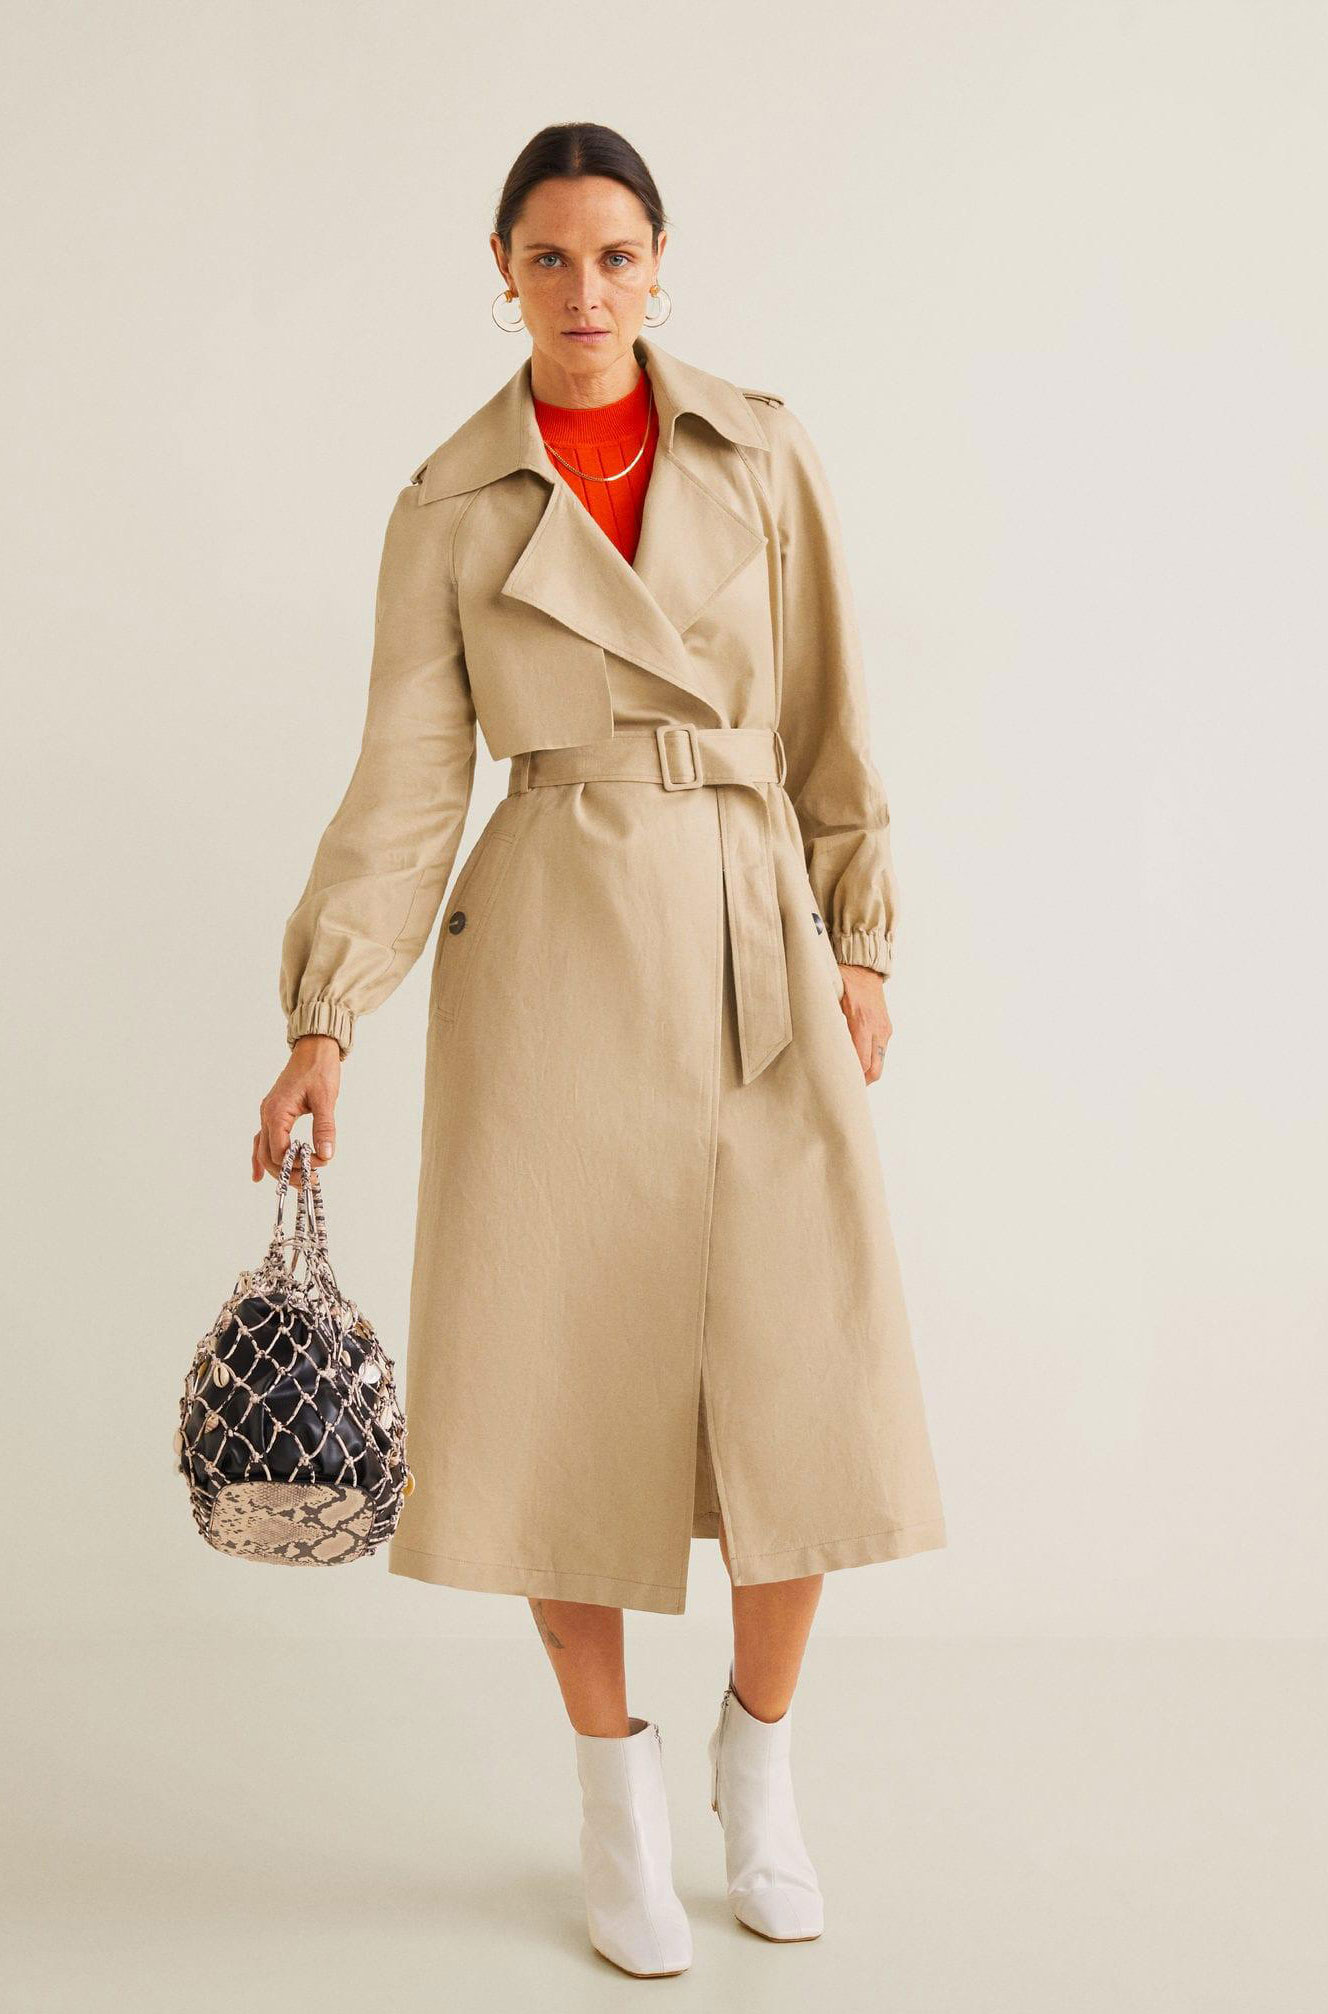 Mango Trench Coat  $149